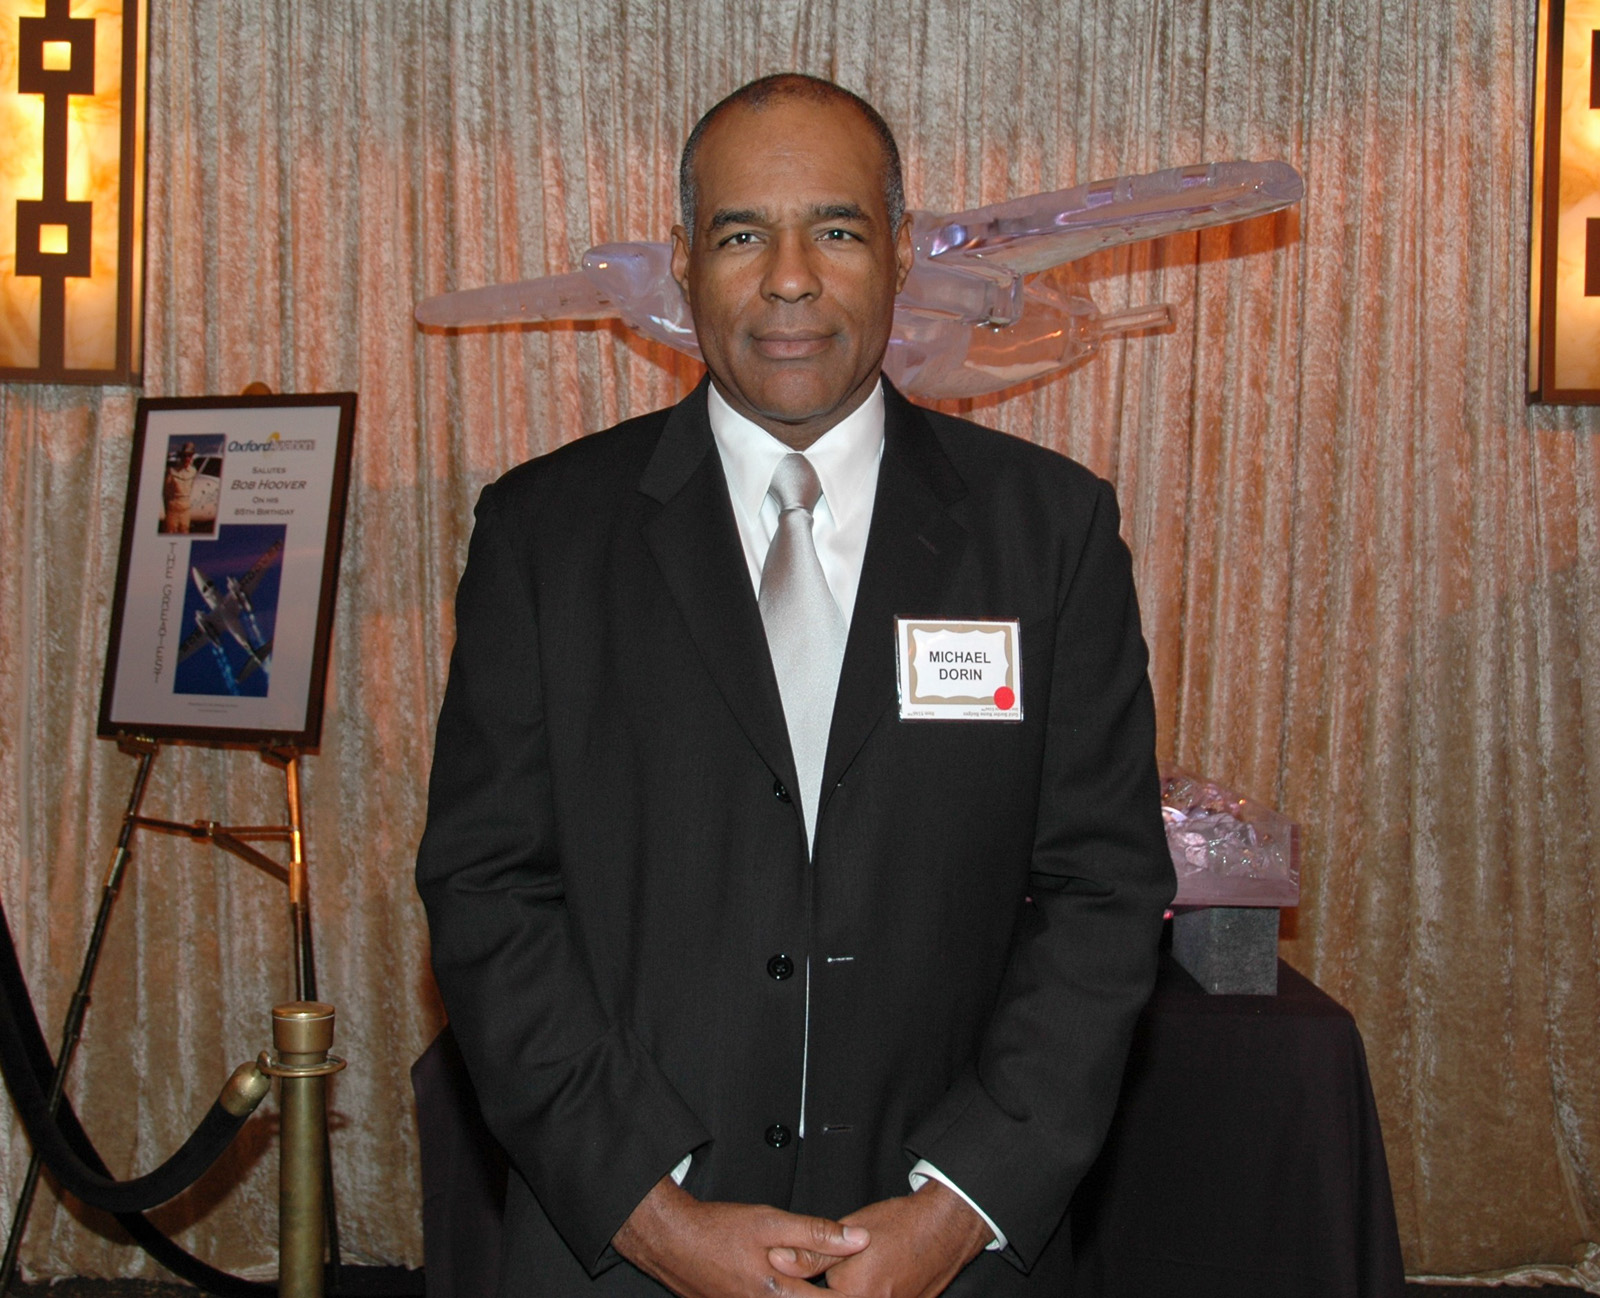 Pilot and Actor Michael Dorn to Emcee NAHF Enshrinement Ceremony